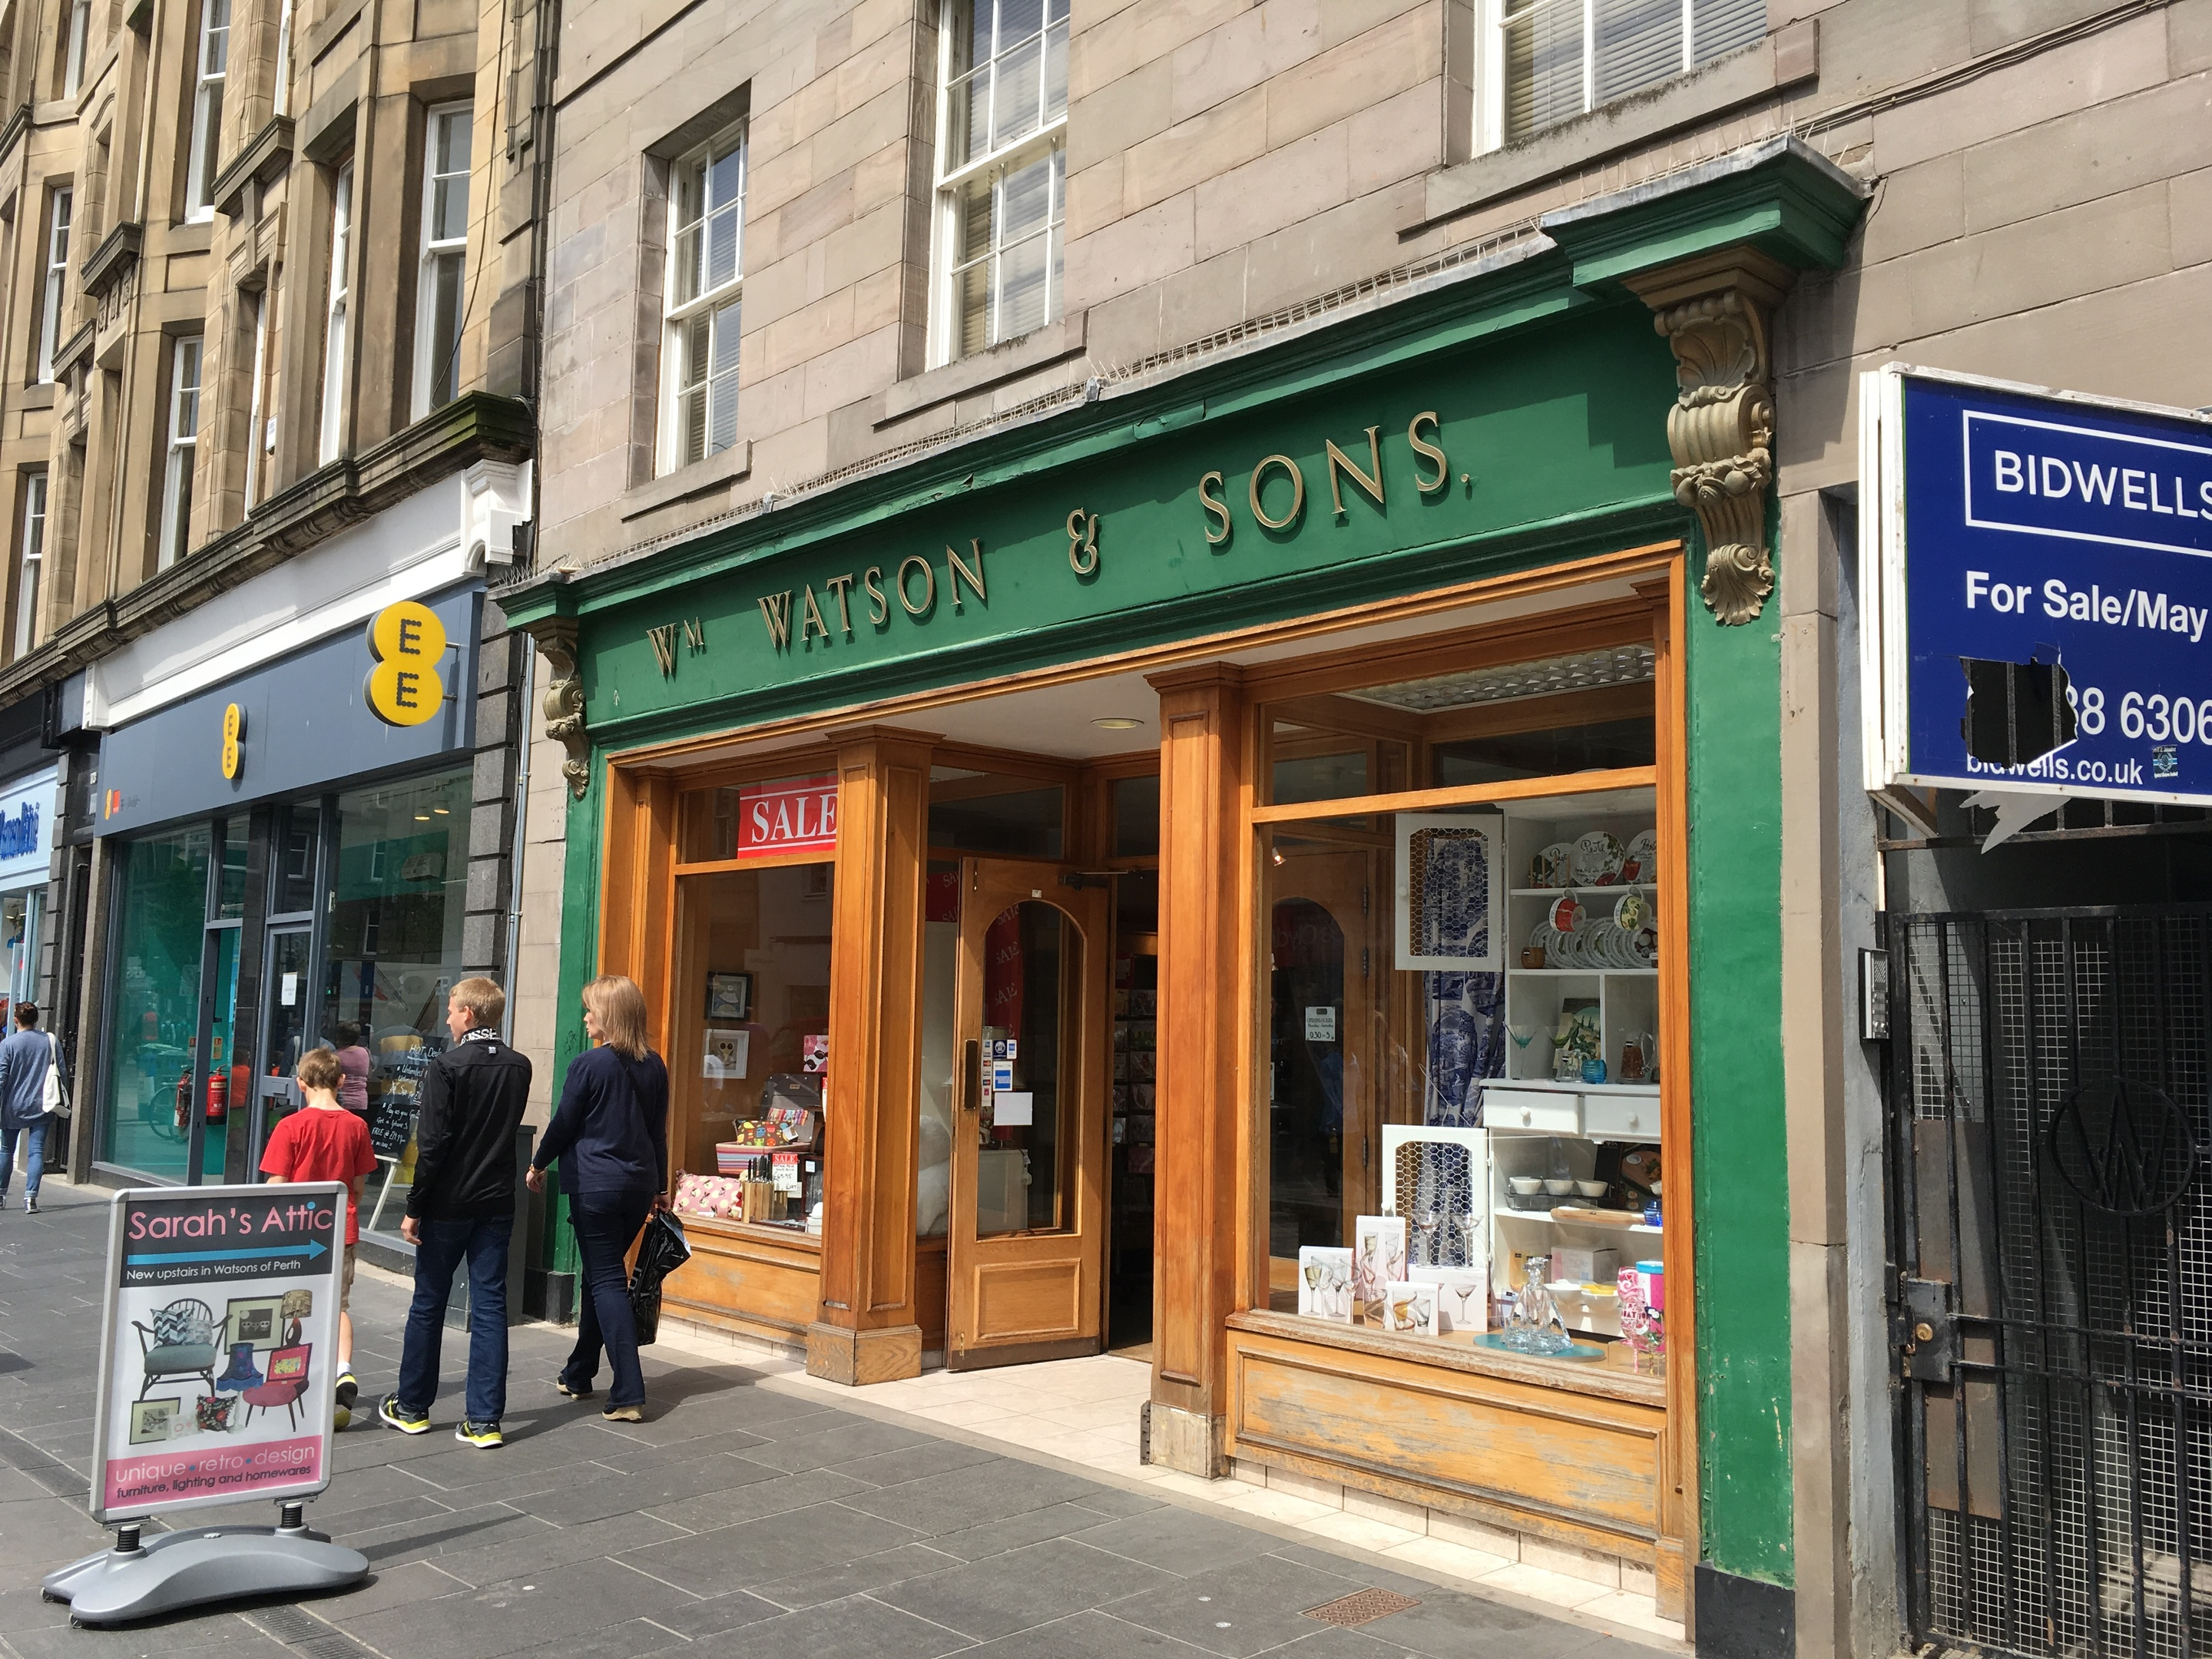 Watsons of Perth in the city centre.